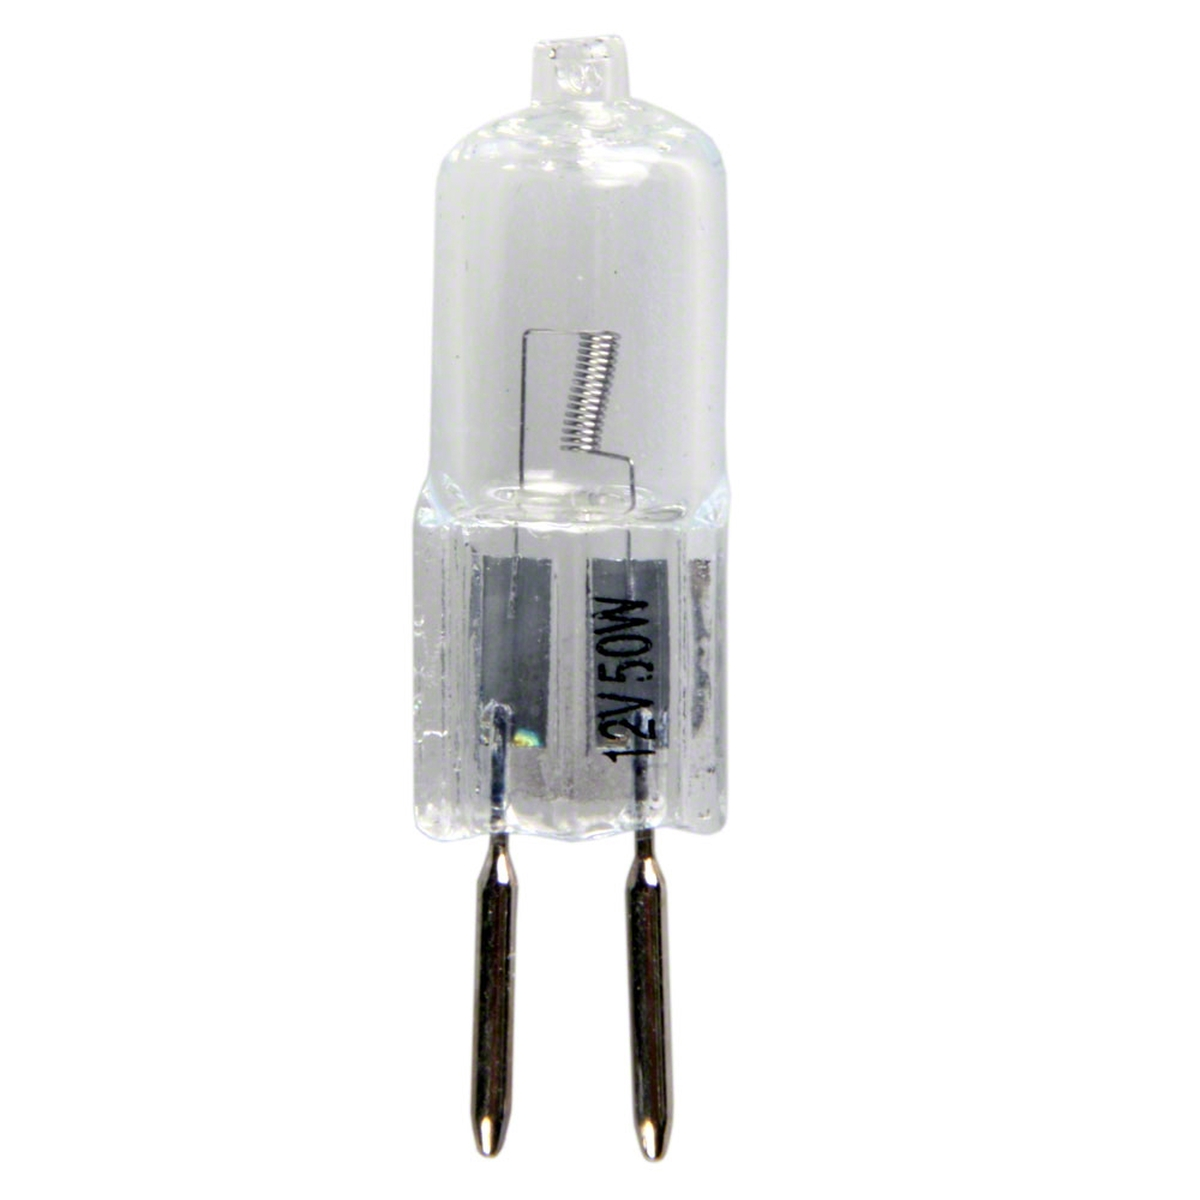 Walimex Modeling Lamp for Flash PBS-400, 50W